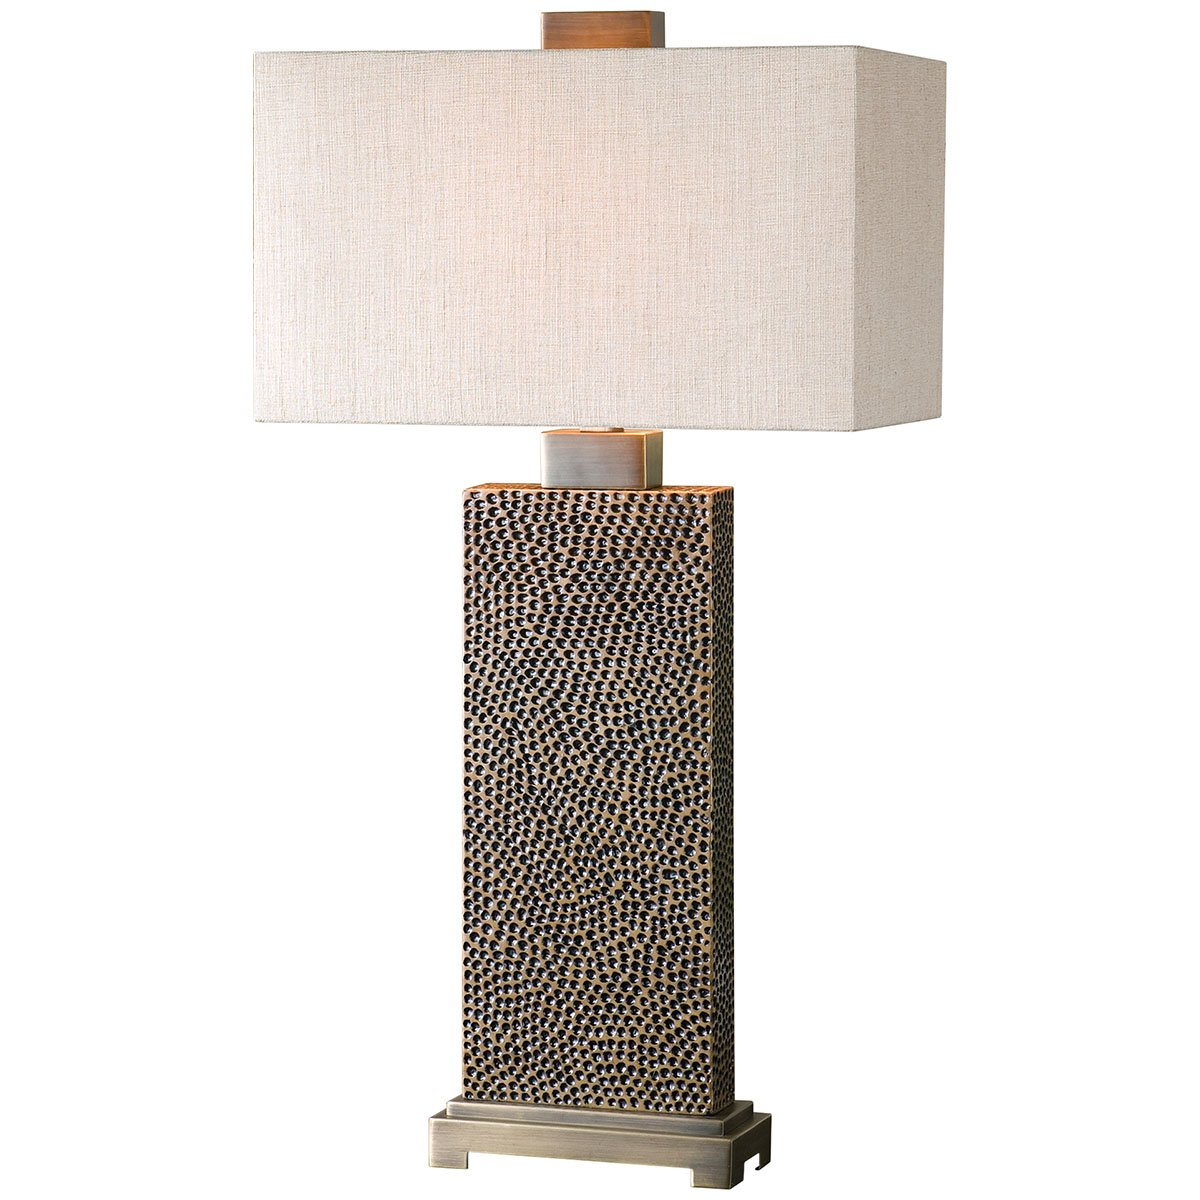 Amazon.com: Uttermost 26938 1 Canfield Coffee Table Lamp, Bronze: Home U0026  Kitchen